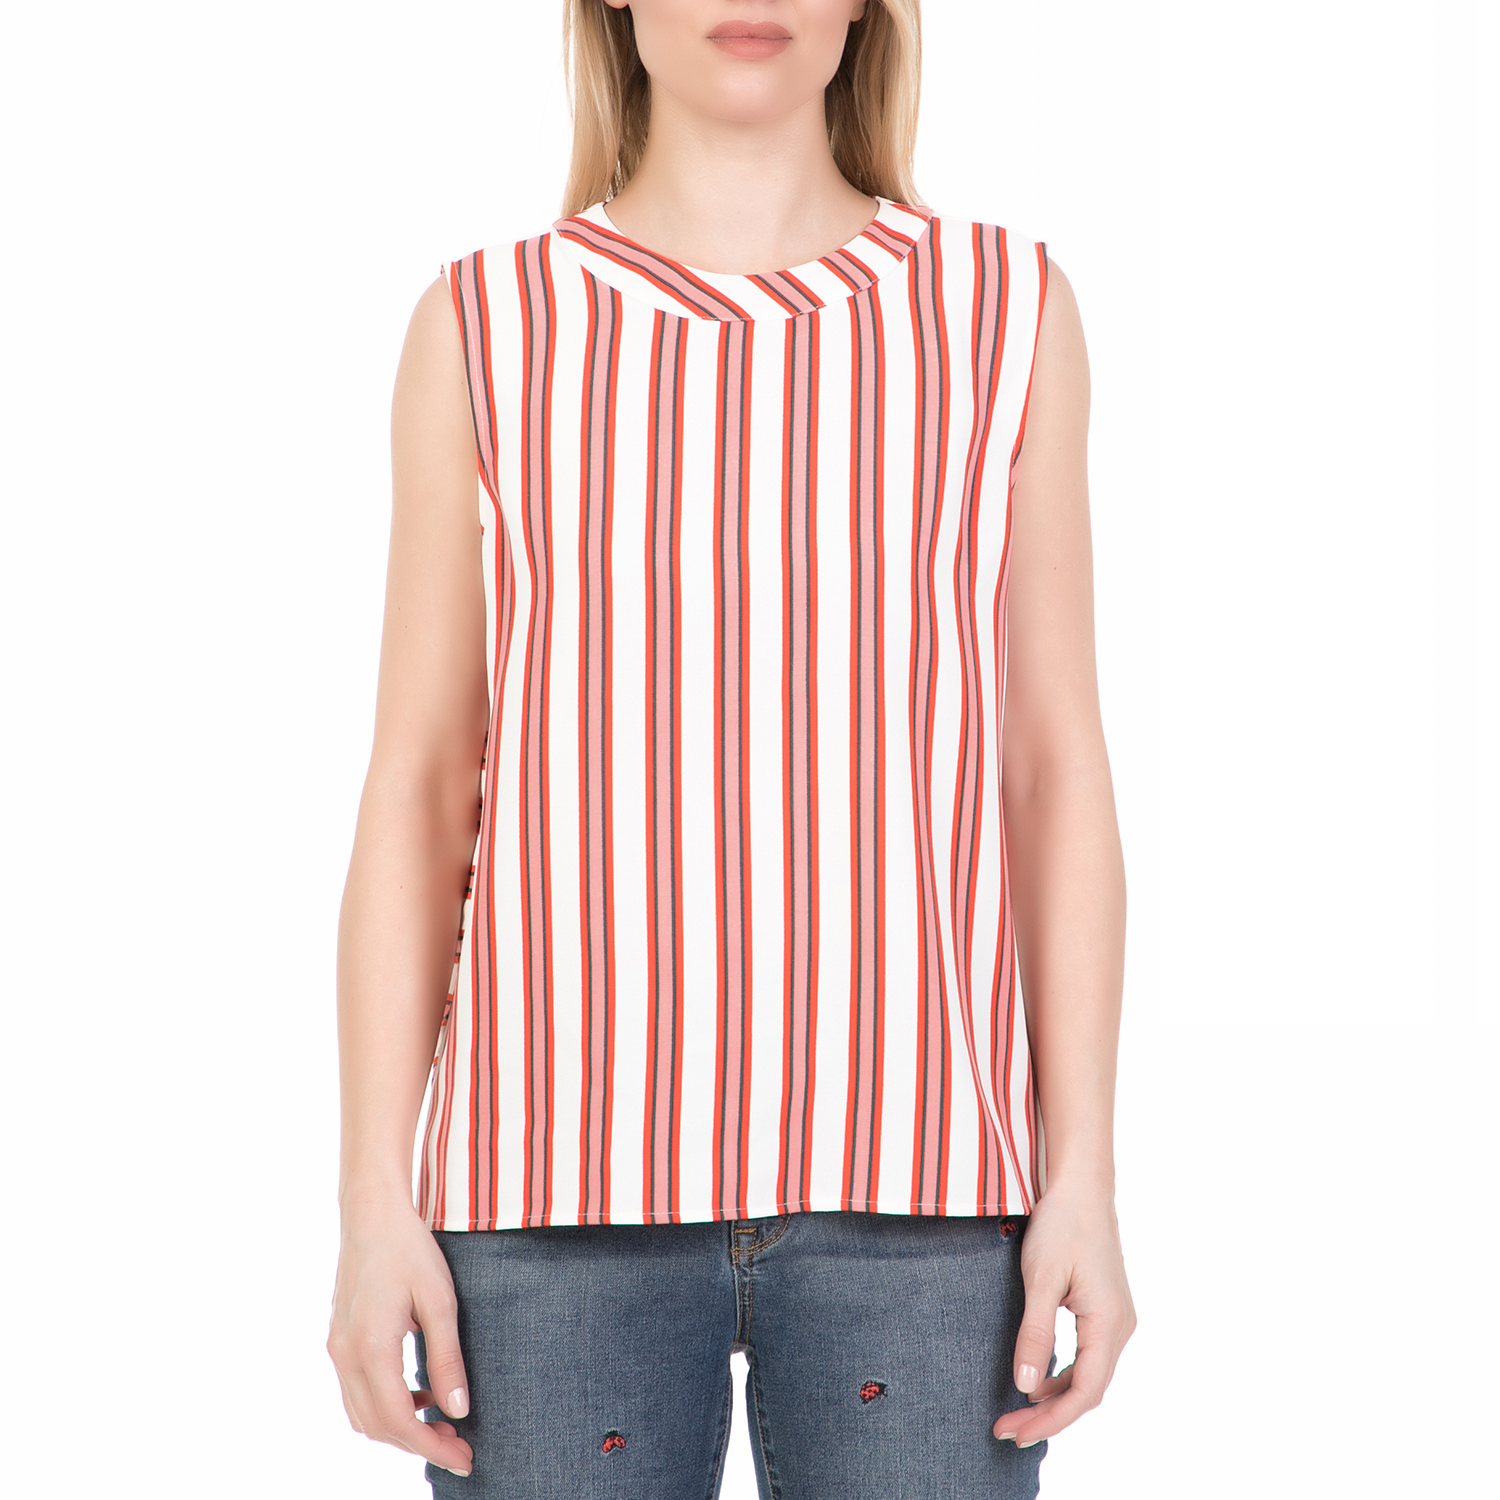 JUICY COUTURE - Γυναικείο τοπ BOLD STRIPE JUICY COUTURE εκρού